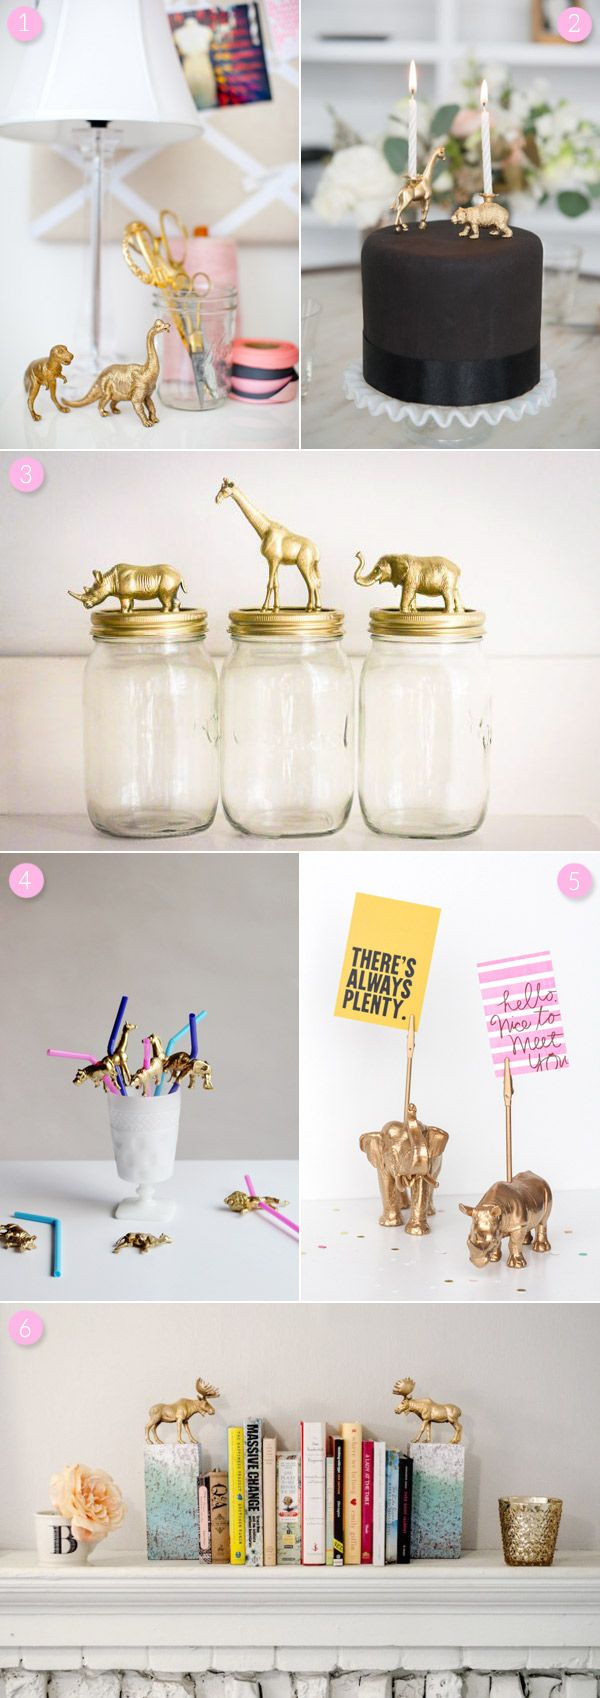 6 Favorite Ways DIY Gold Animals Have Been Reinvented